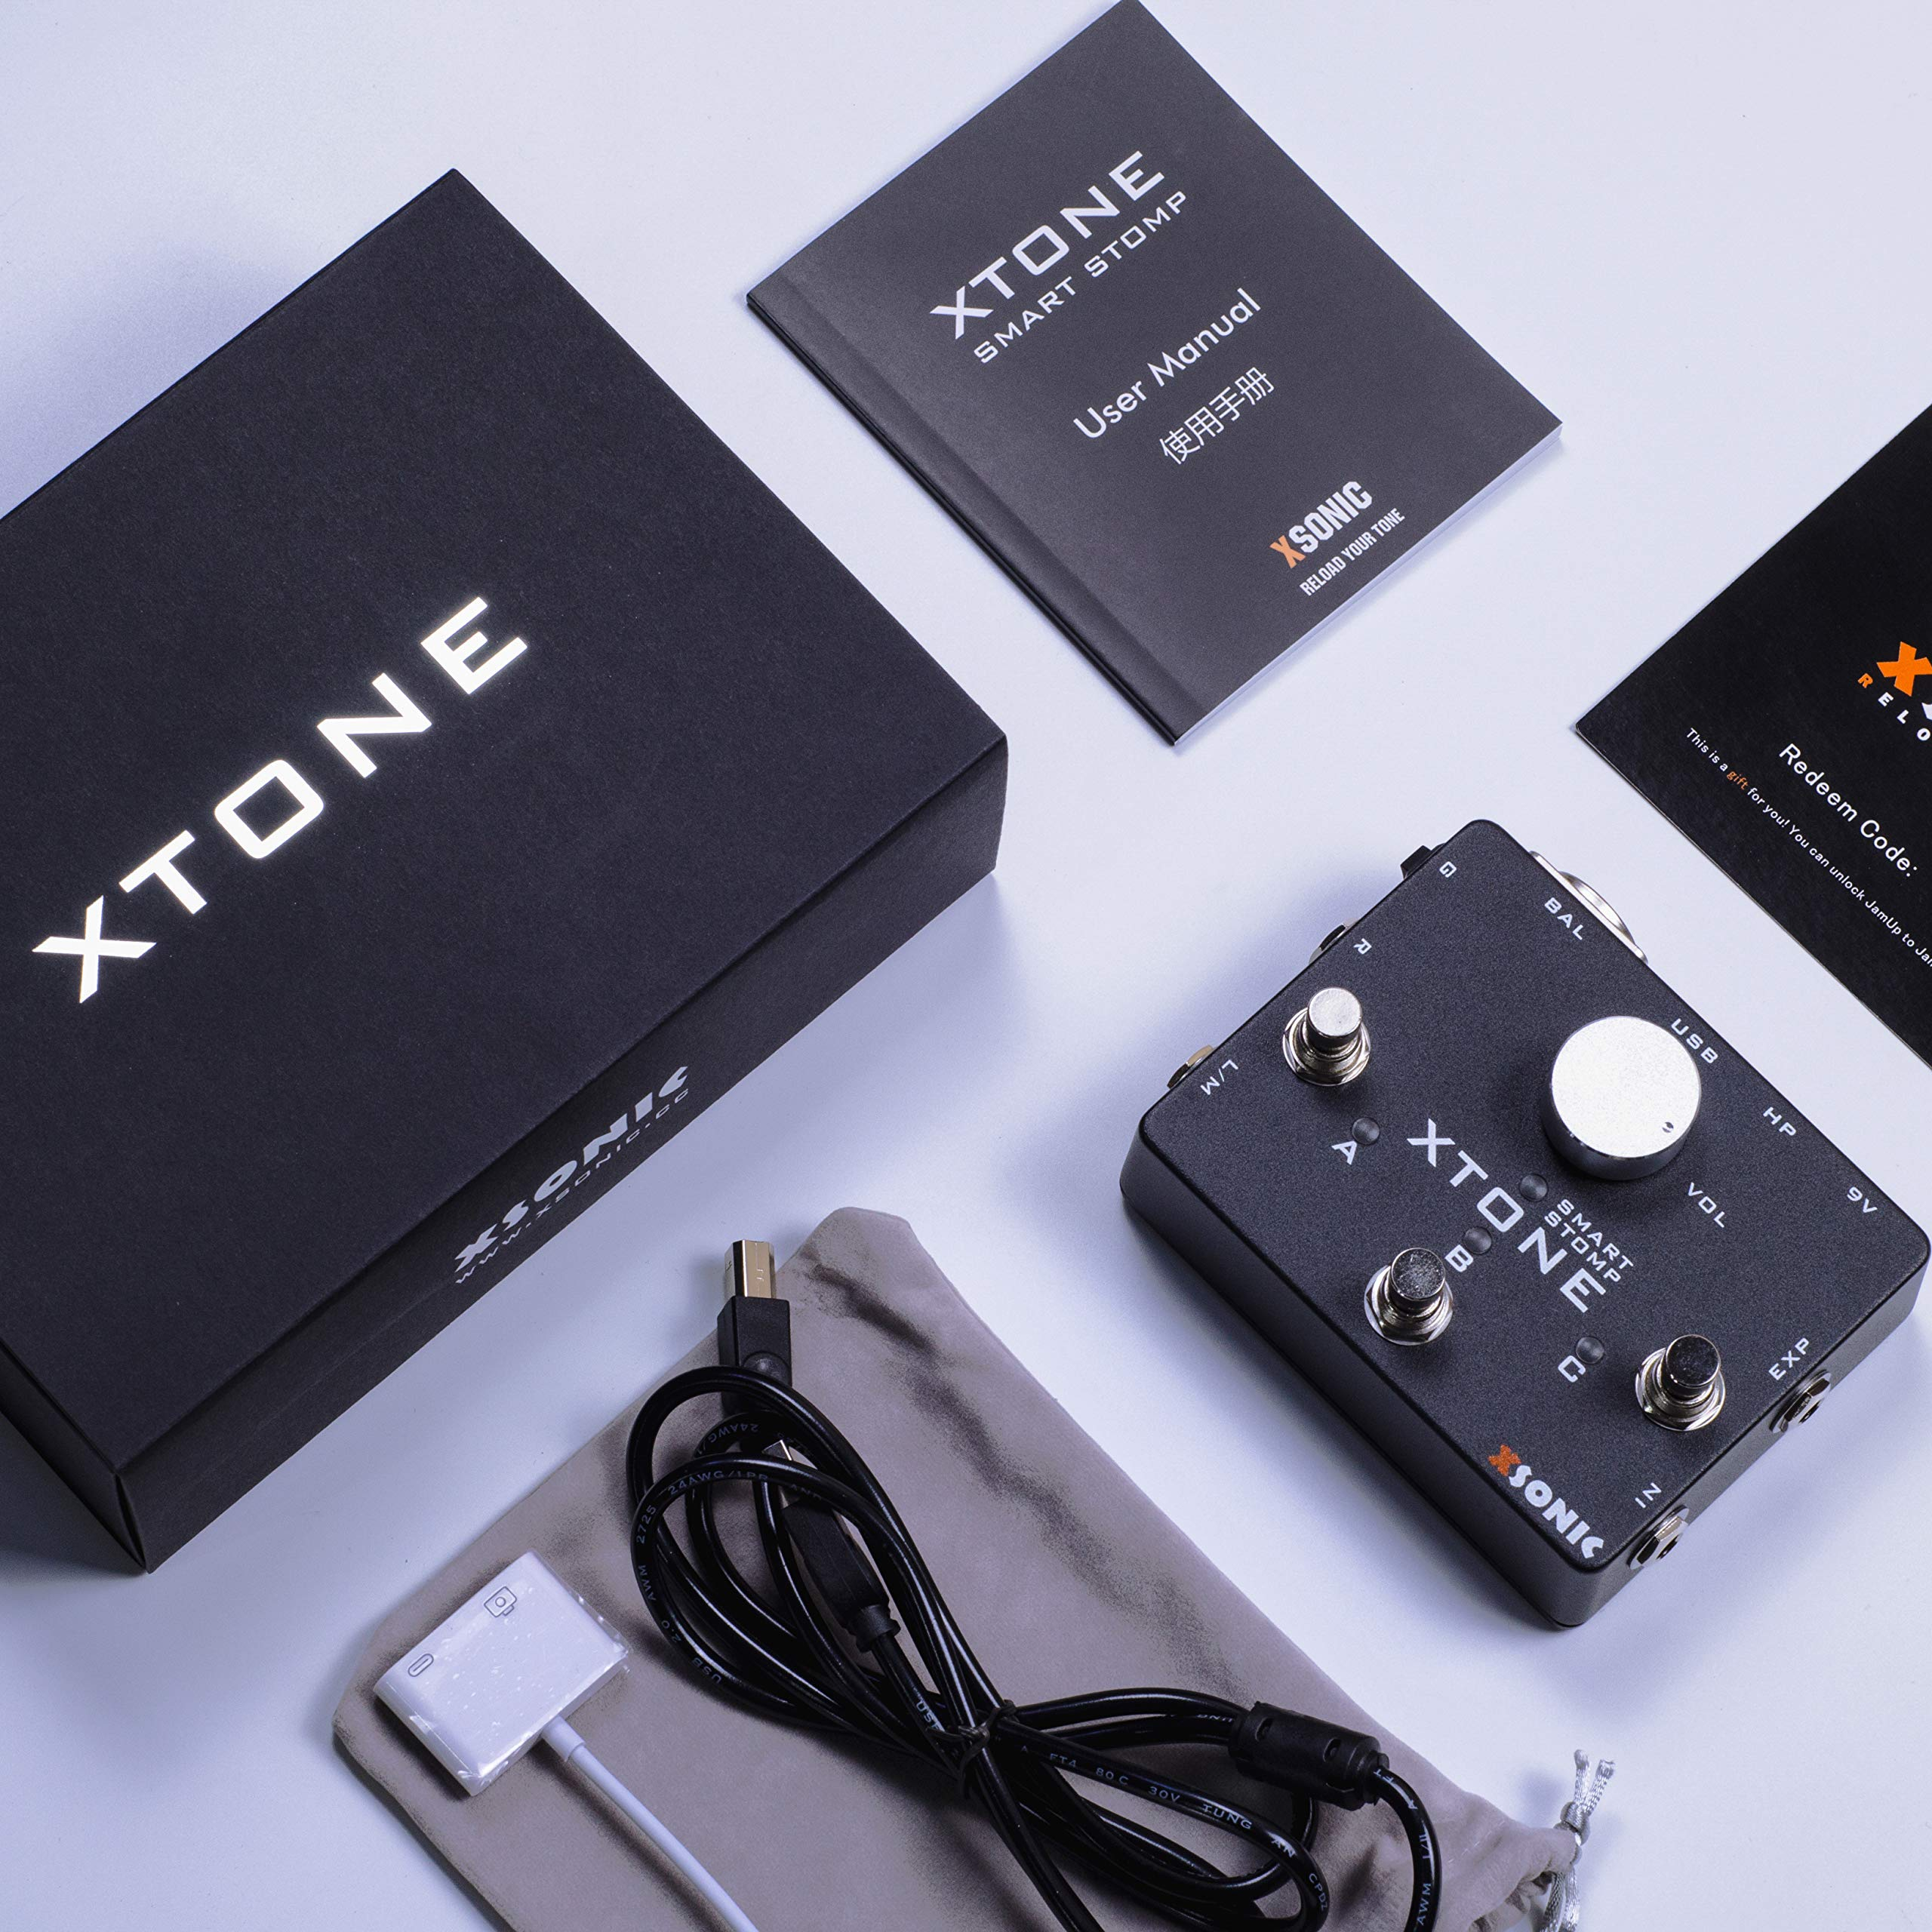 XTONE 192K Mobile Guitar Interface With MIDI Controller & Ultra Low Latency & BIAS & JamUp by XSONIC (Image #8)